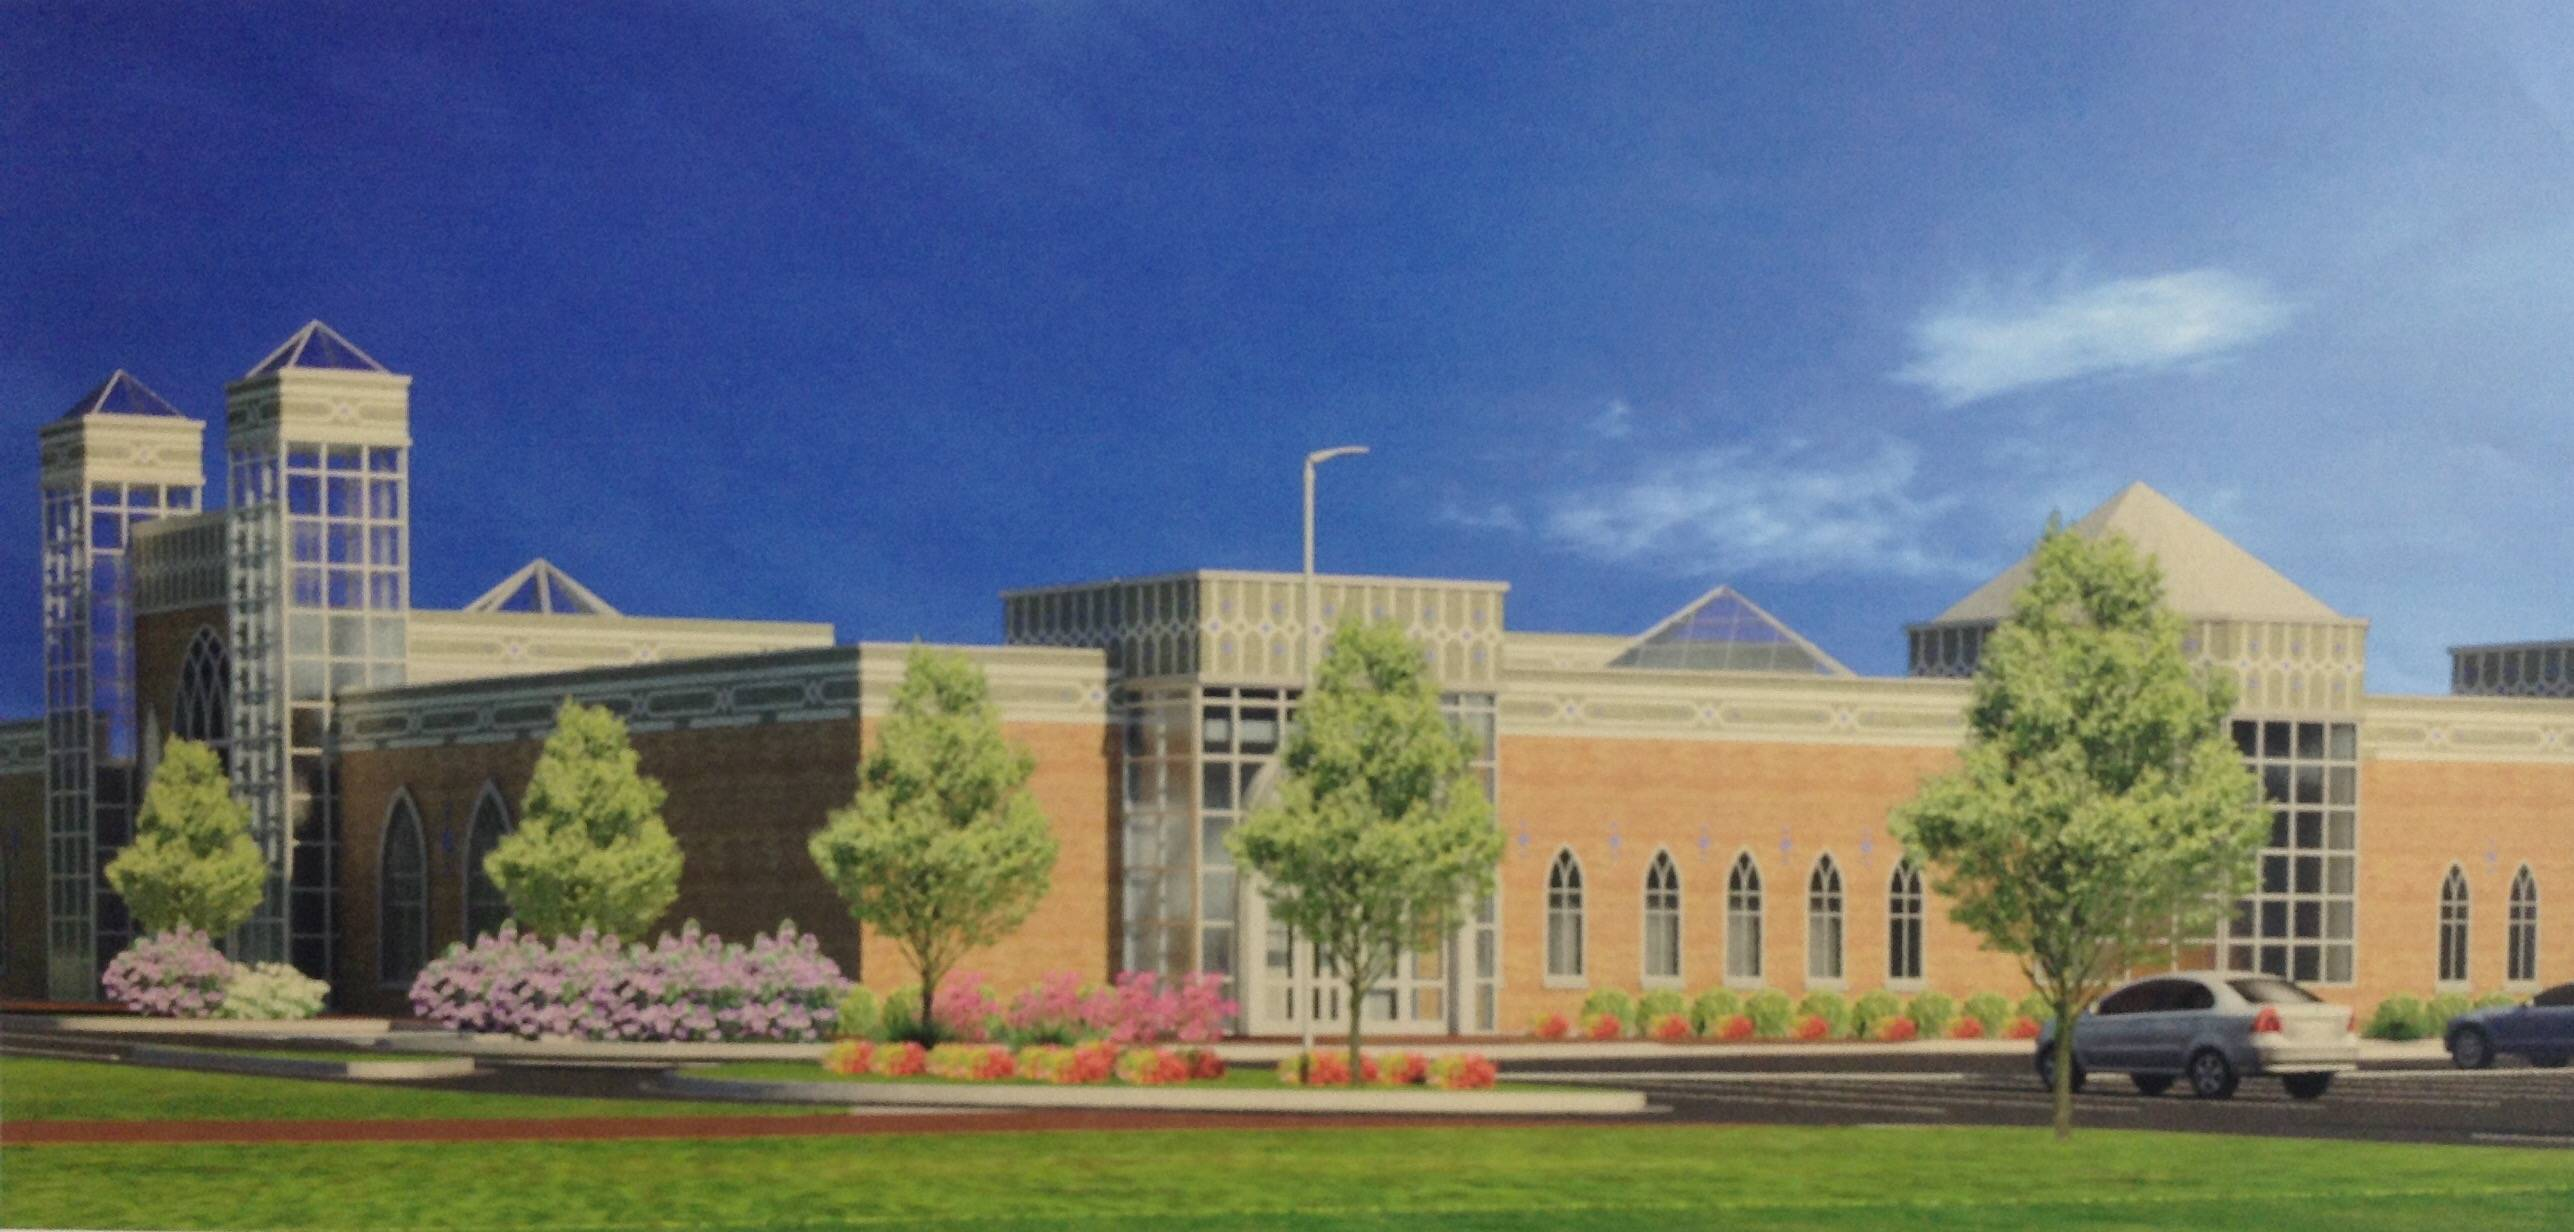 A rendering shows the proposed renovation of a building at 1200 Hicks Road in Rolling Meadows into a new 47,534-square-foot mosque. Aldermen weighed in on the proposal for the first time Tuesday.